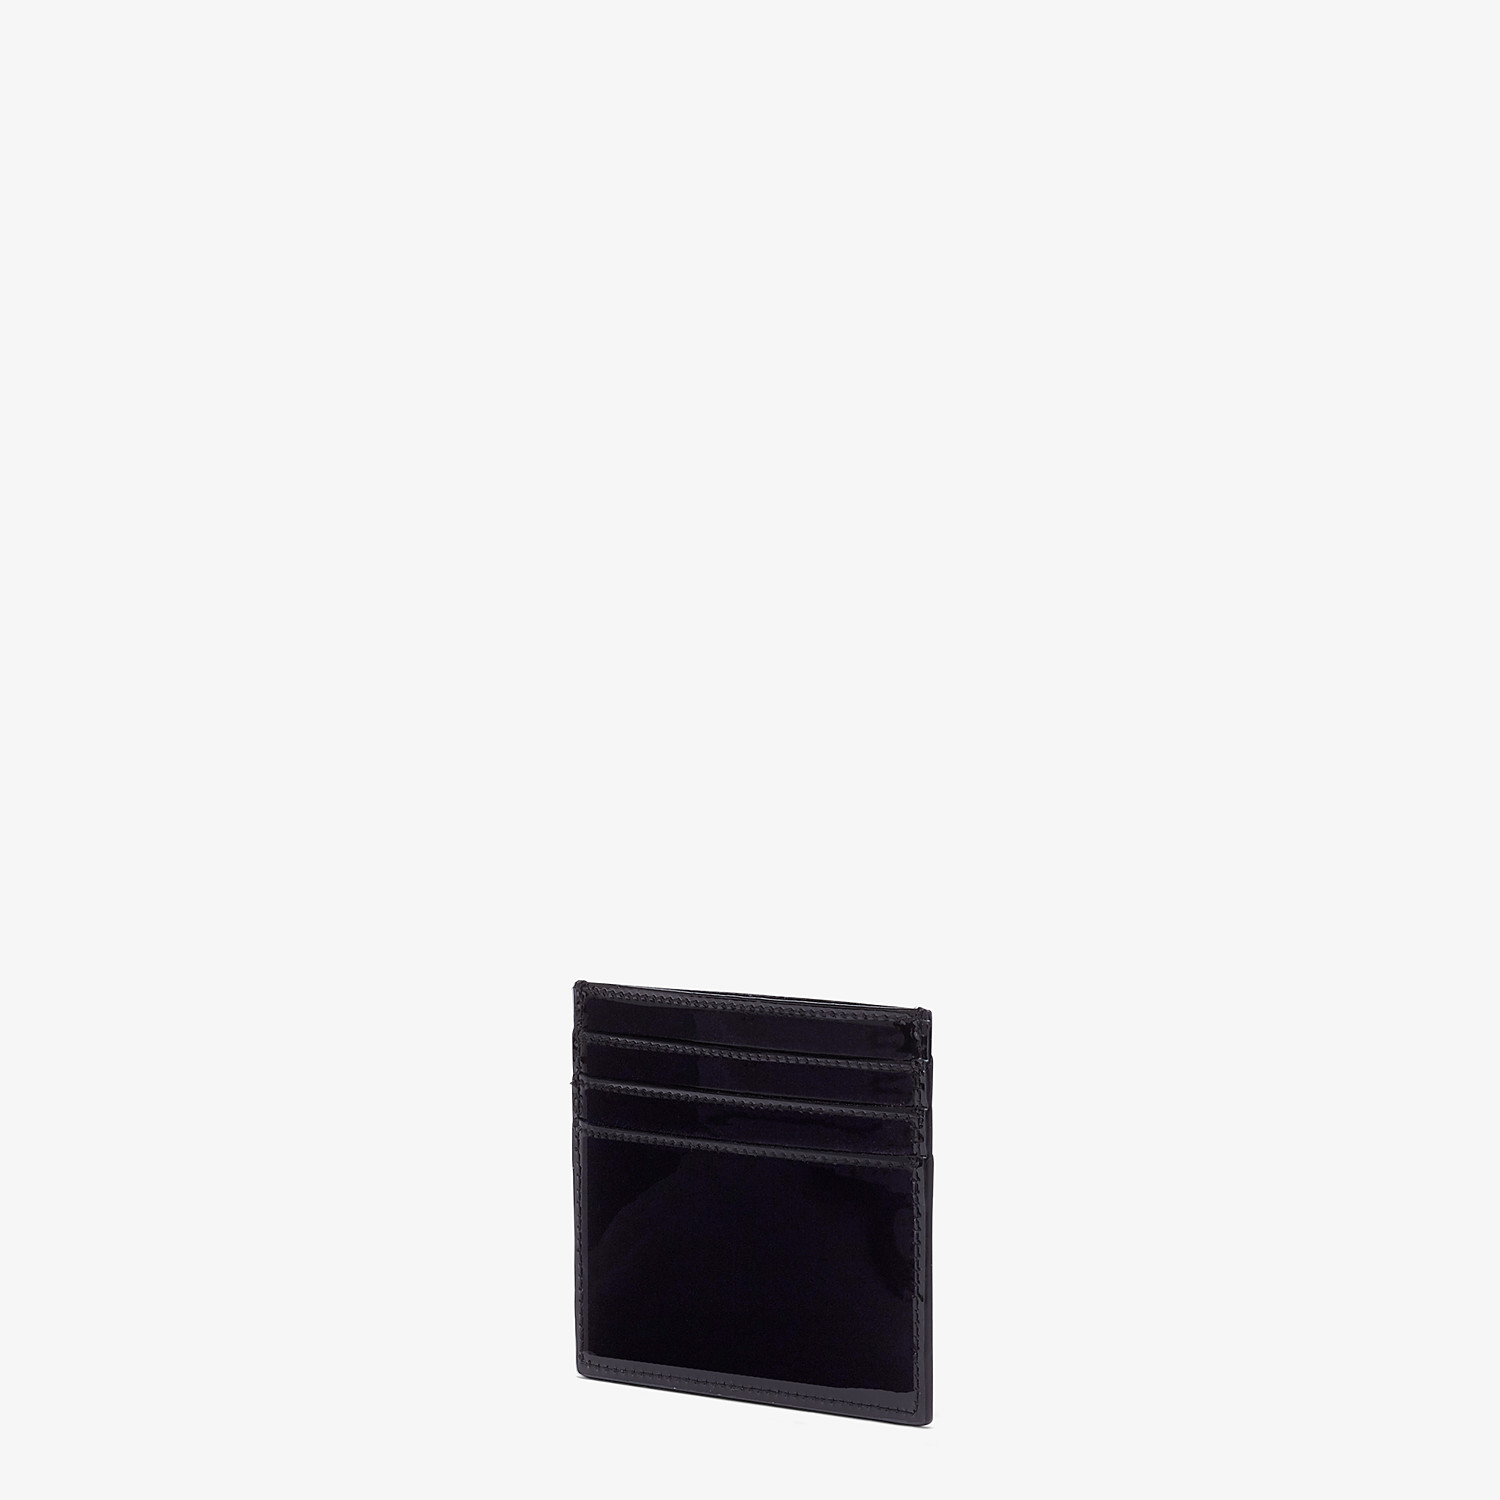 FENDI CARD HOLDER - Flat card holder in black patent leather - view 2 detail